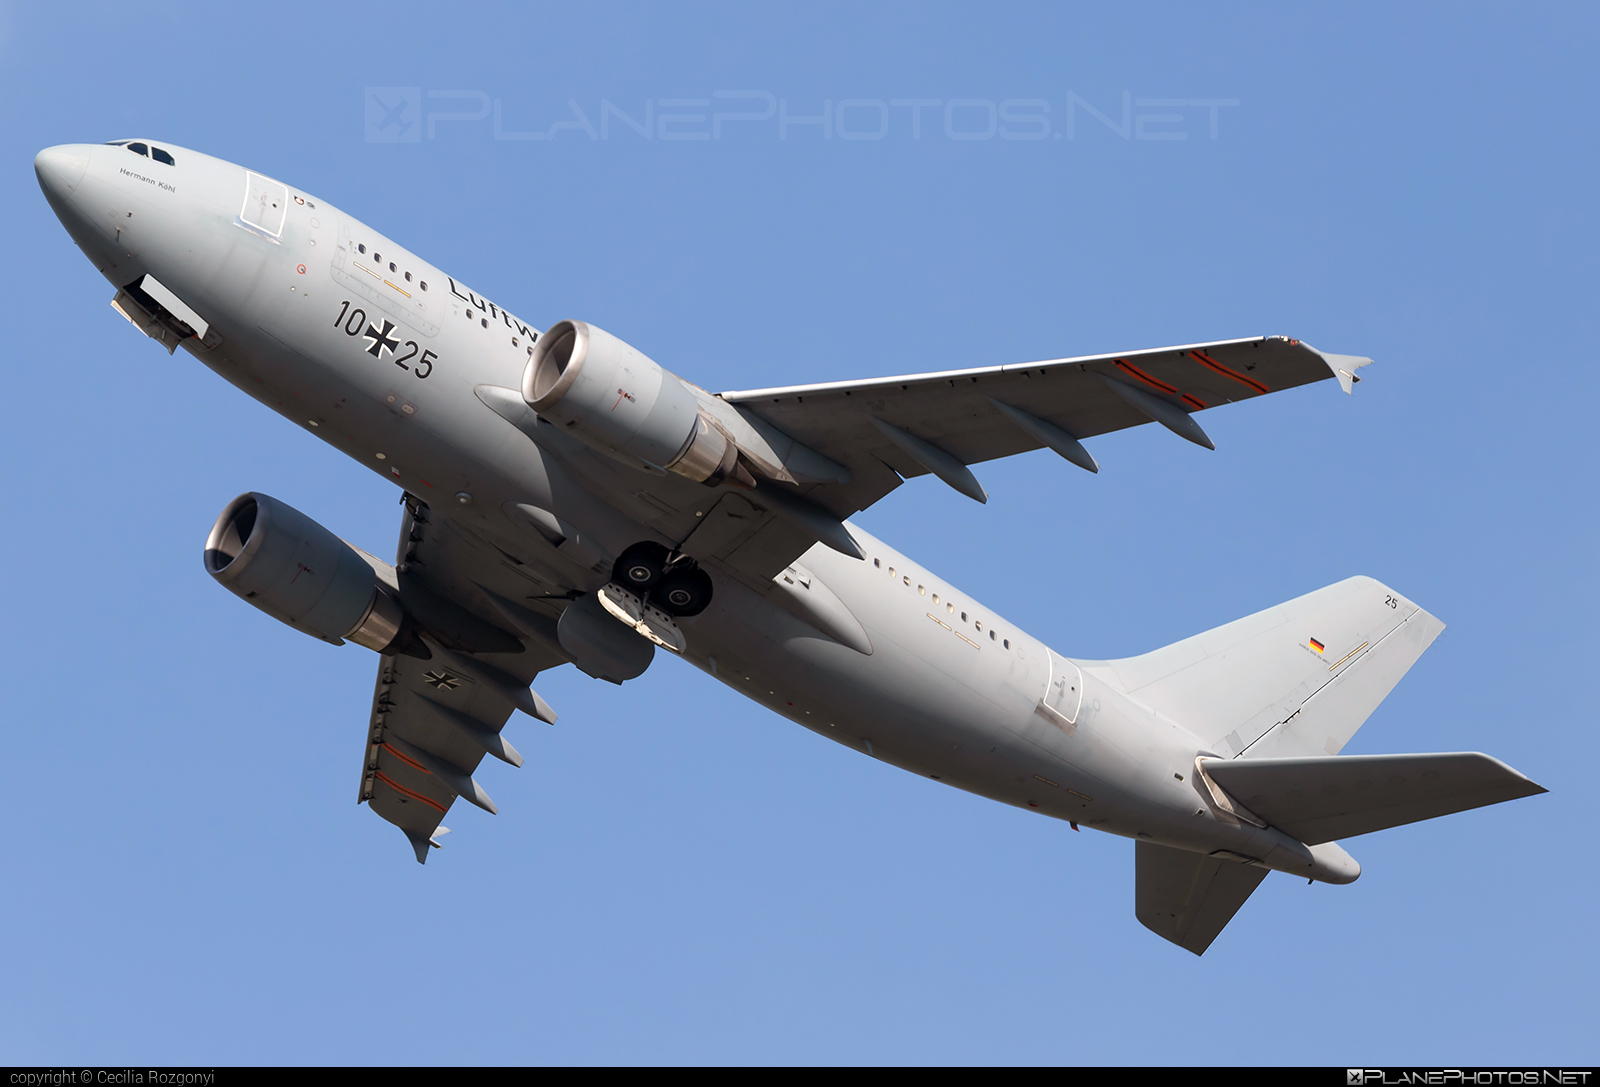 Airbus A310-304MRTT - 10+25 operated by Luftwaffe (German Air Force) #GermanAirForce #a310 #airbus #luftwaffe